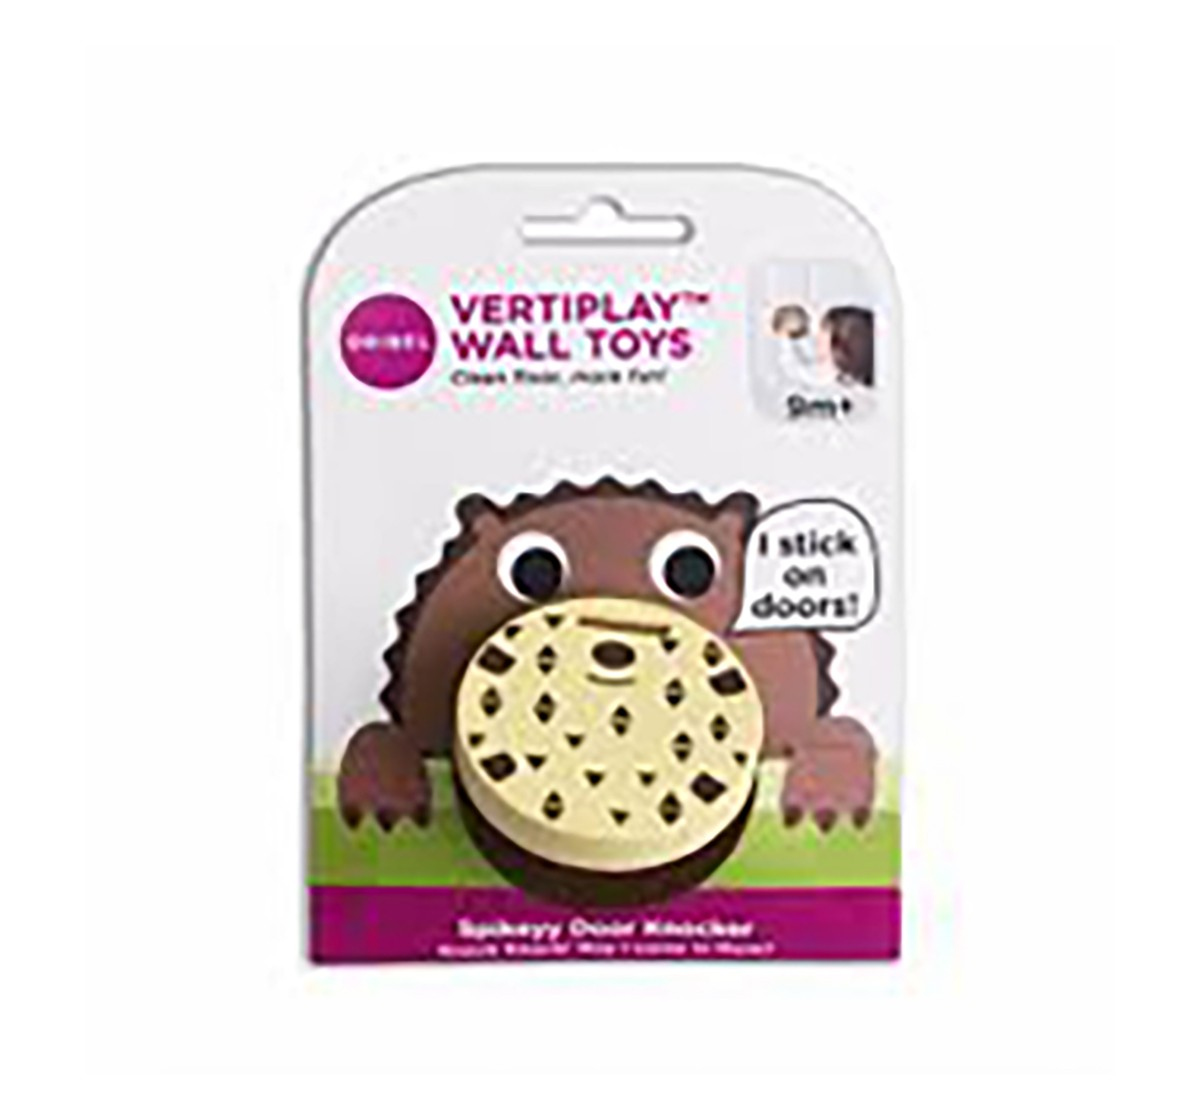 Vertiplay Wall Toy: Spikeyy Door Knocker Activity Toys for Kids age 9M+